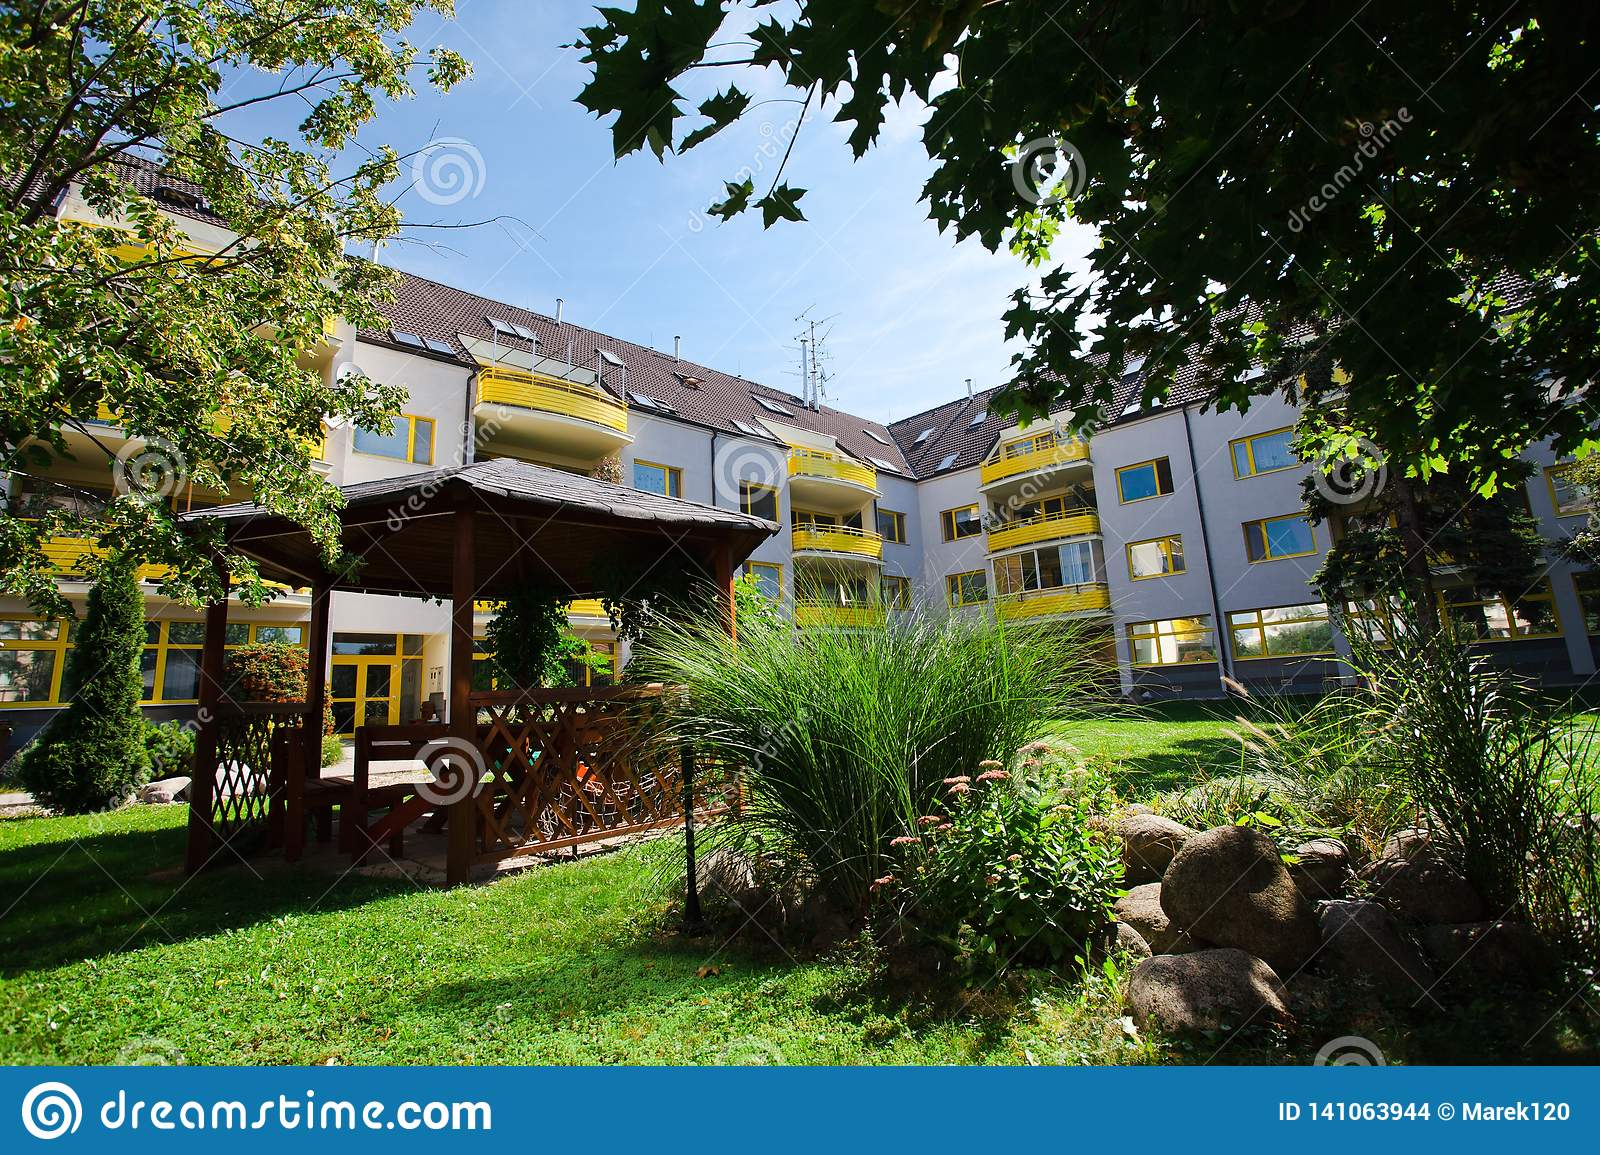 Yellow complex of residential house - Block of flats - Park in backyard